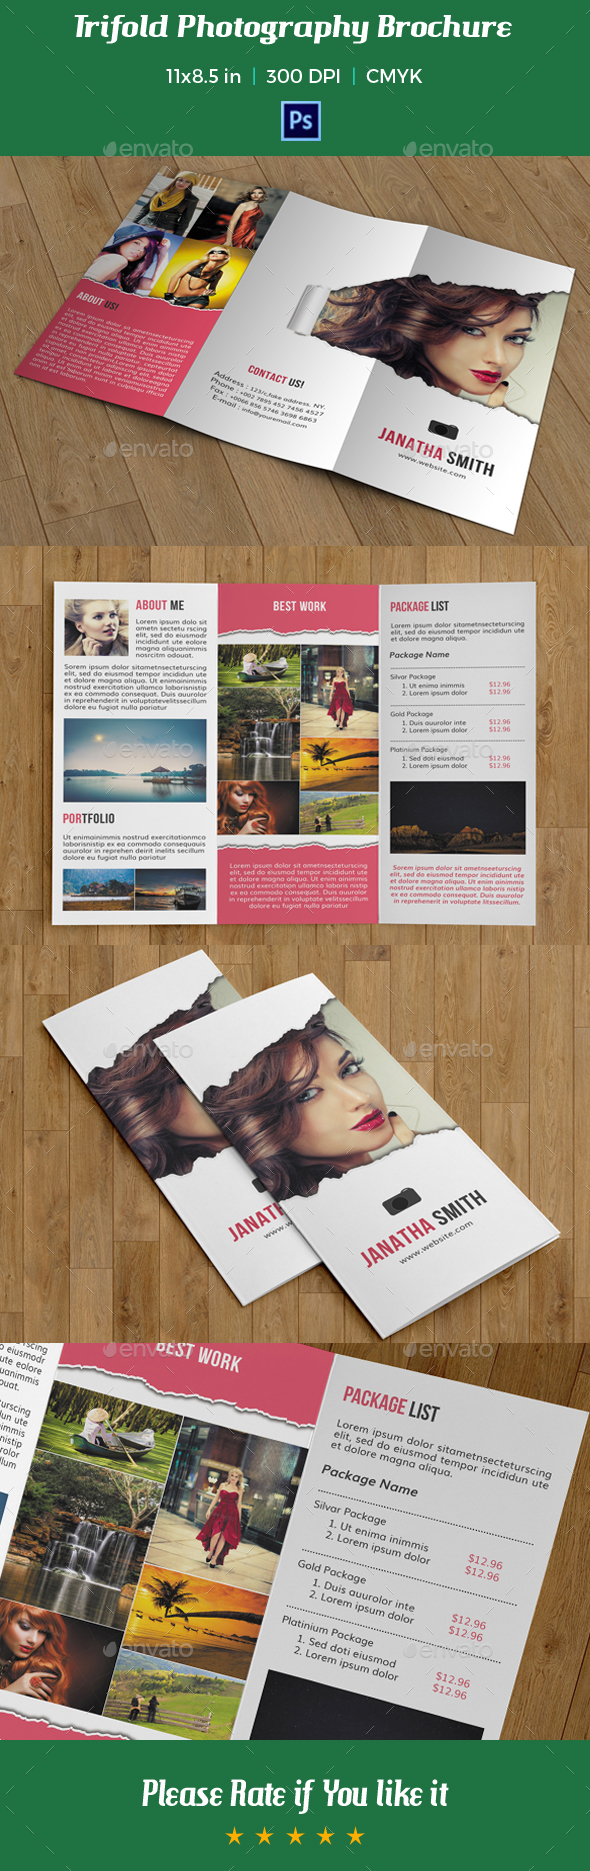 Trifold Photography Brochure Template V09 By Azgraphics Graphicriver